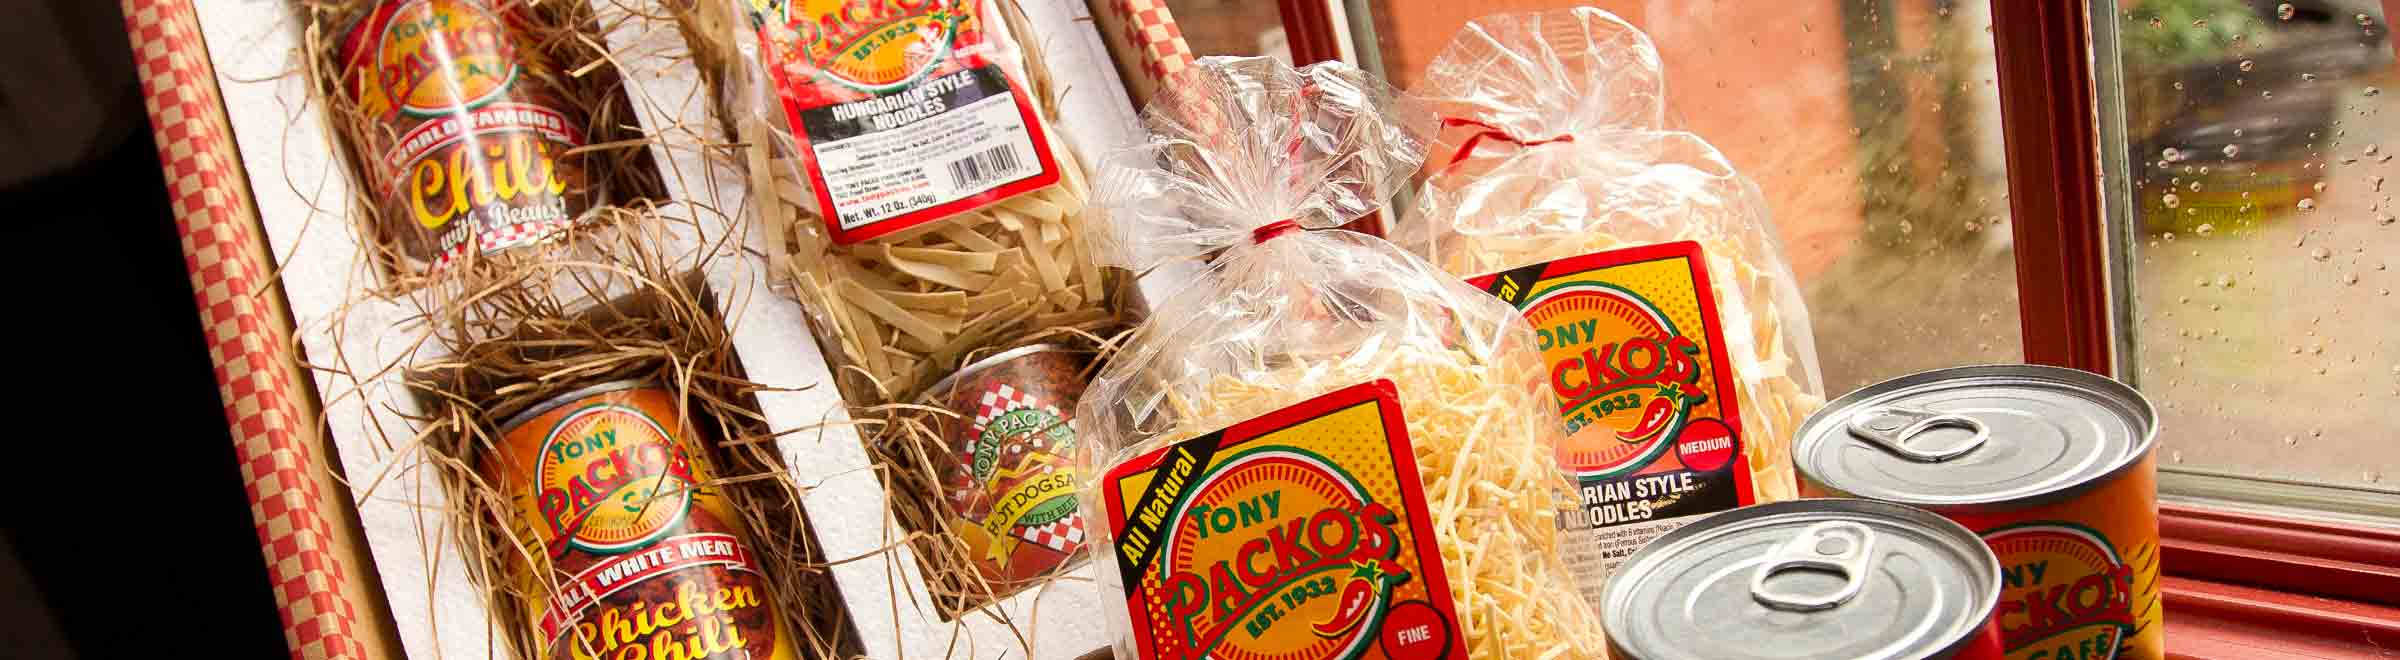 Tony Packo's Gift Pack open box with jar of pickles and bags of popcorn